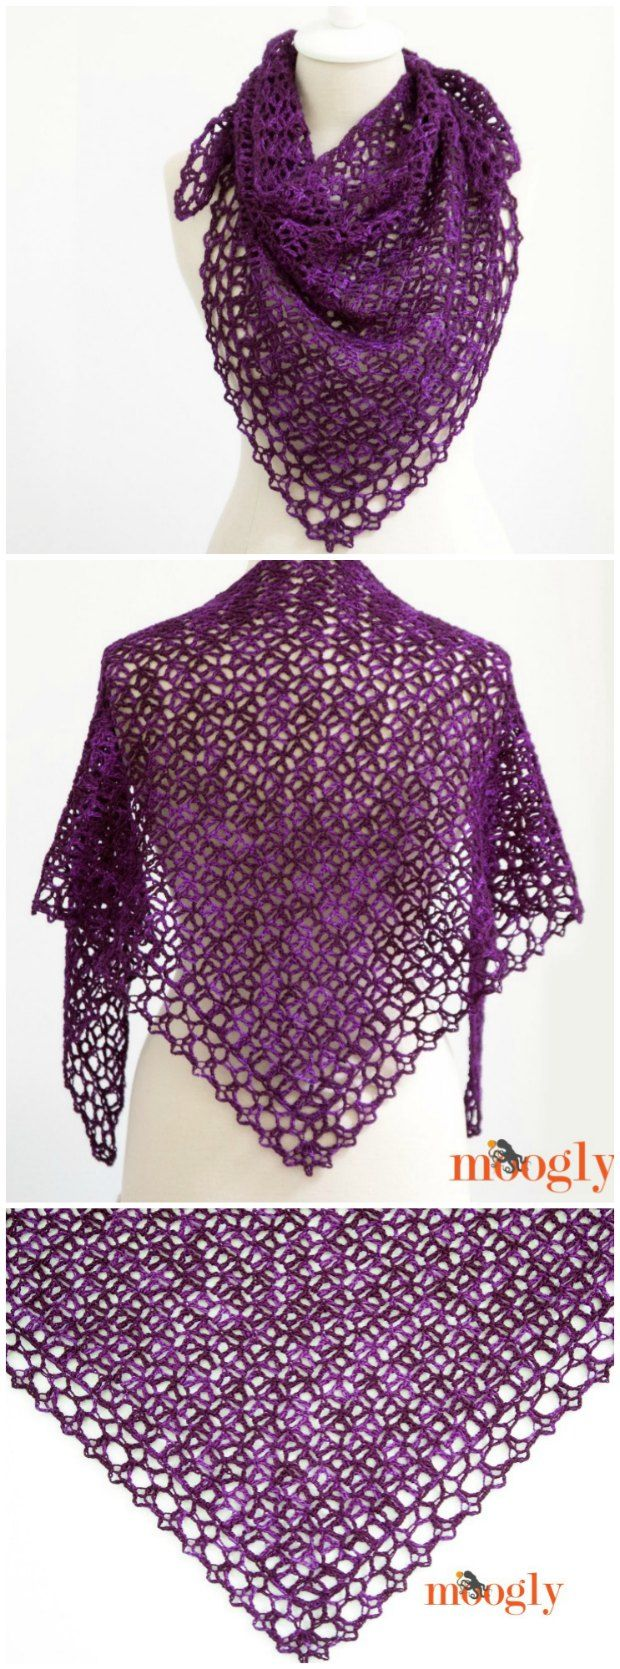 Fortunes Shawlette Crochet Pattern Free Crochet Shawl And Crochet